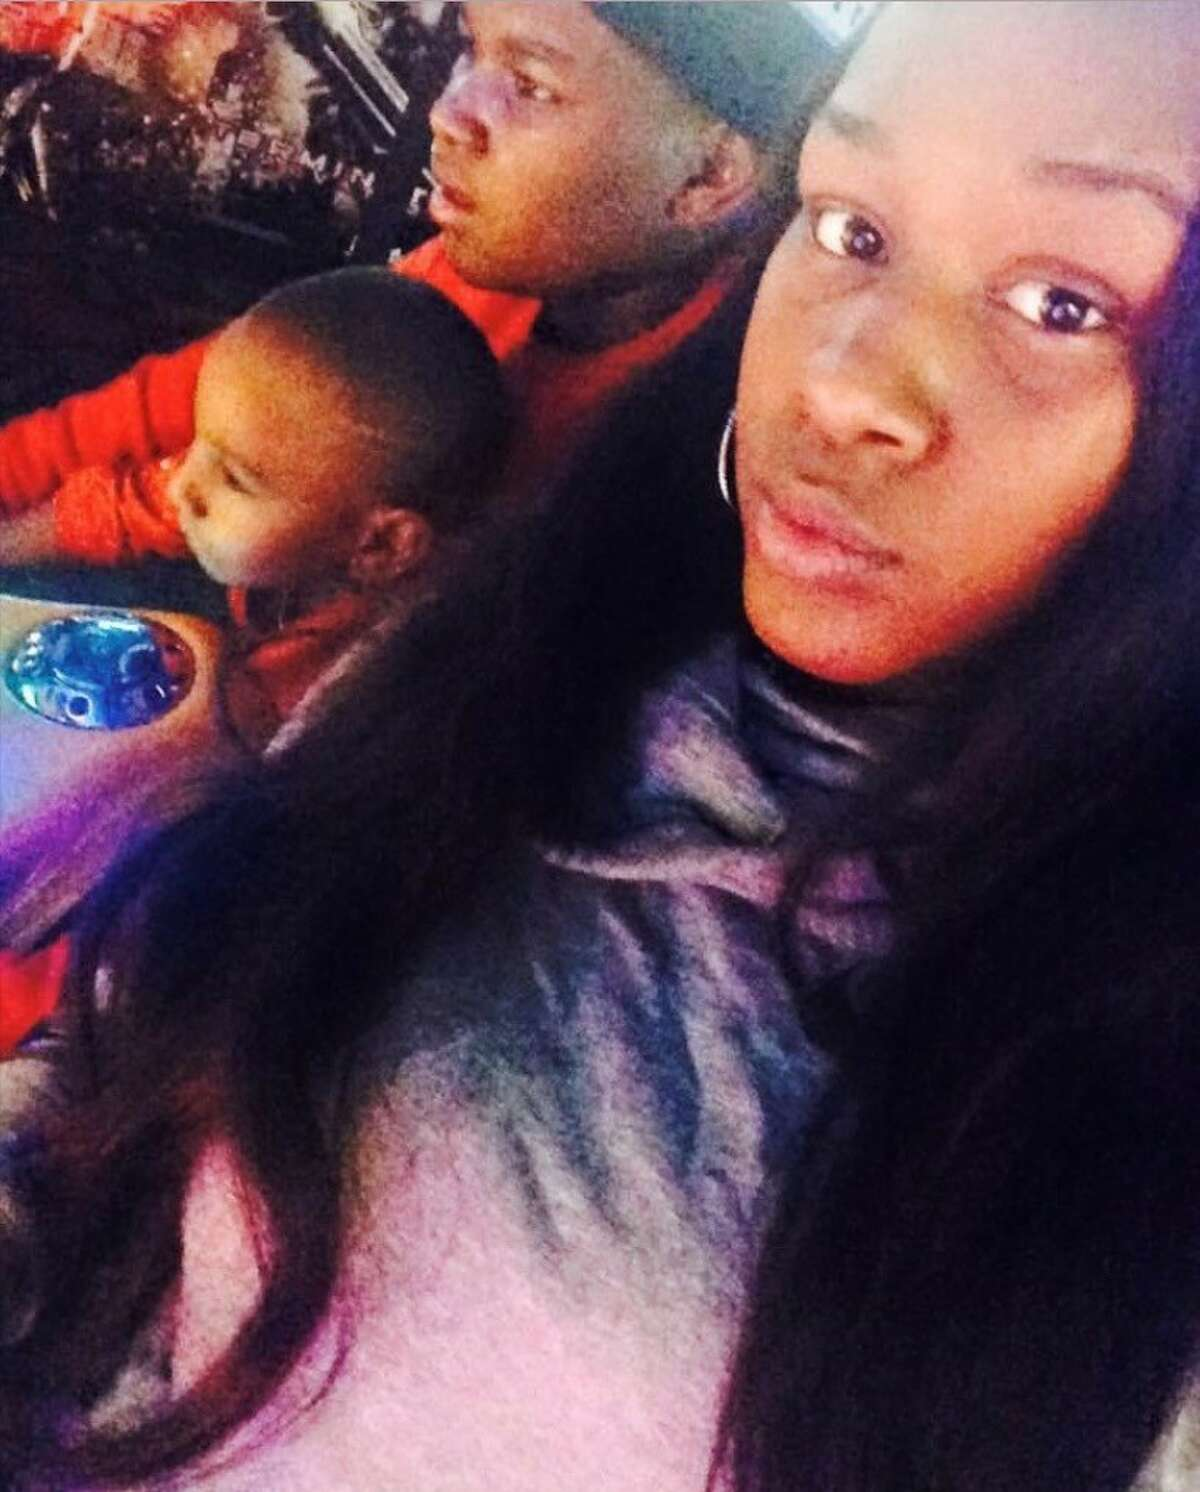 Shanita Thomas with her two children, Elijah, Jr. and Damoni. Thomas, who was pregnant with her third child, was killed in a shooting at a party in Albany Jan. 30, 2021.